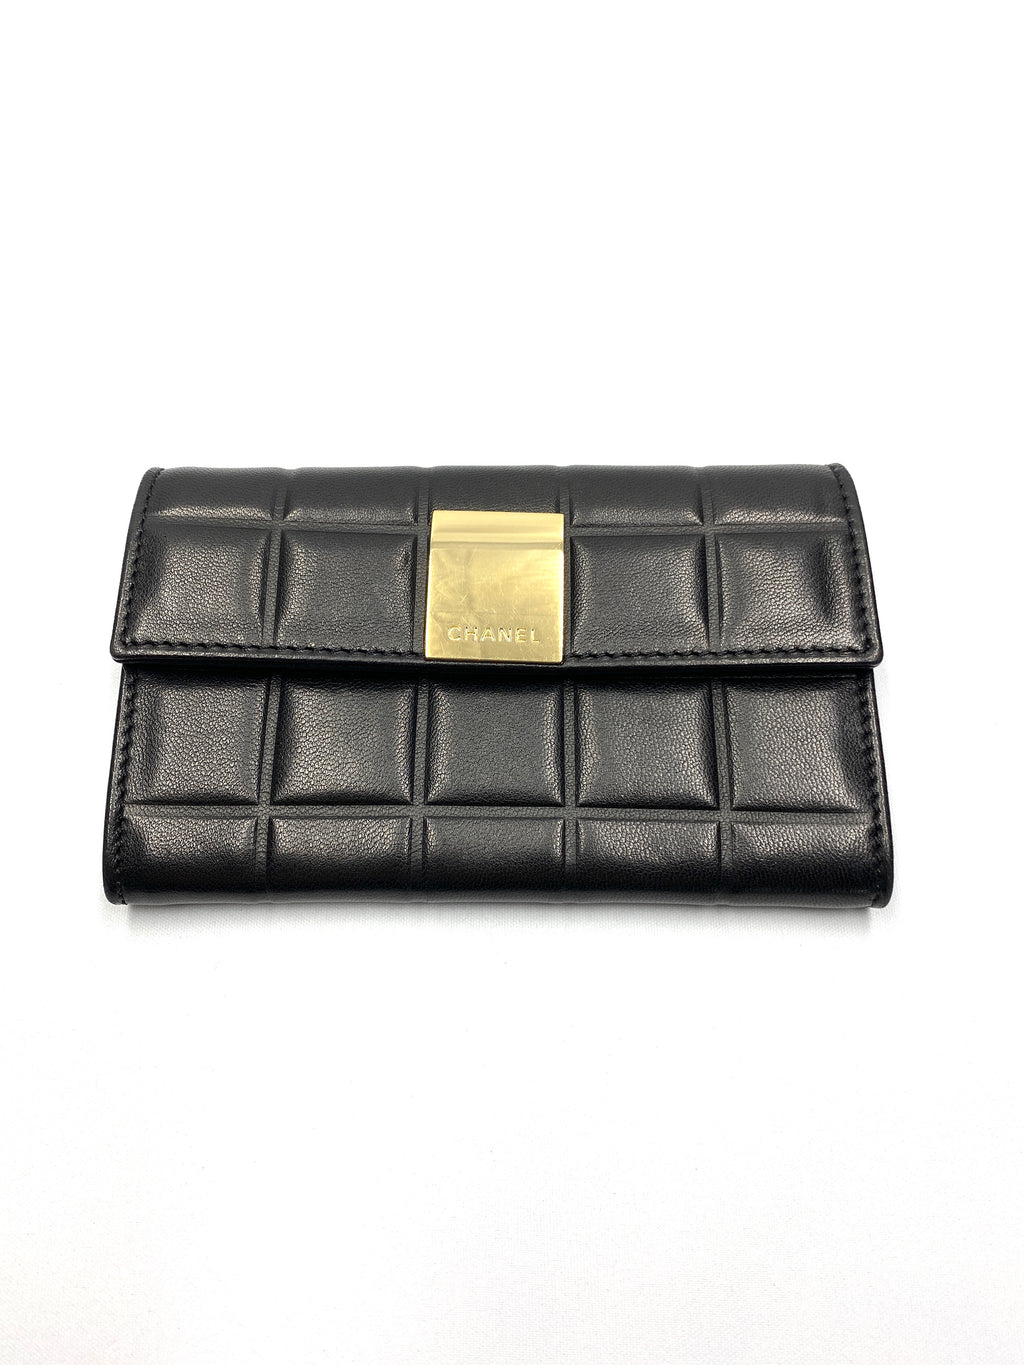 CHANEL -  CHOCOLATE BAR WALLET IN BLACK LEATHER - VINTAGE